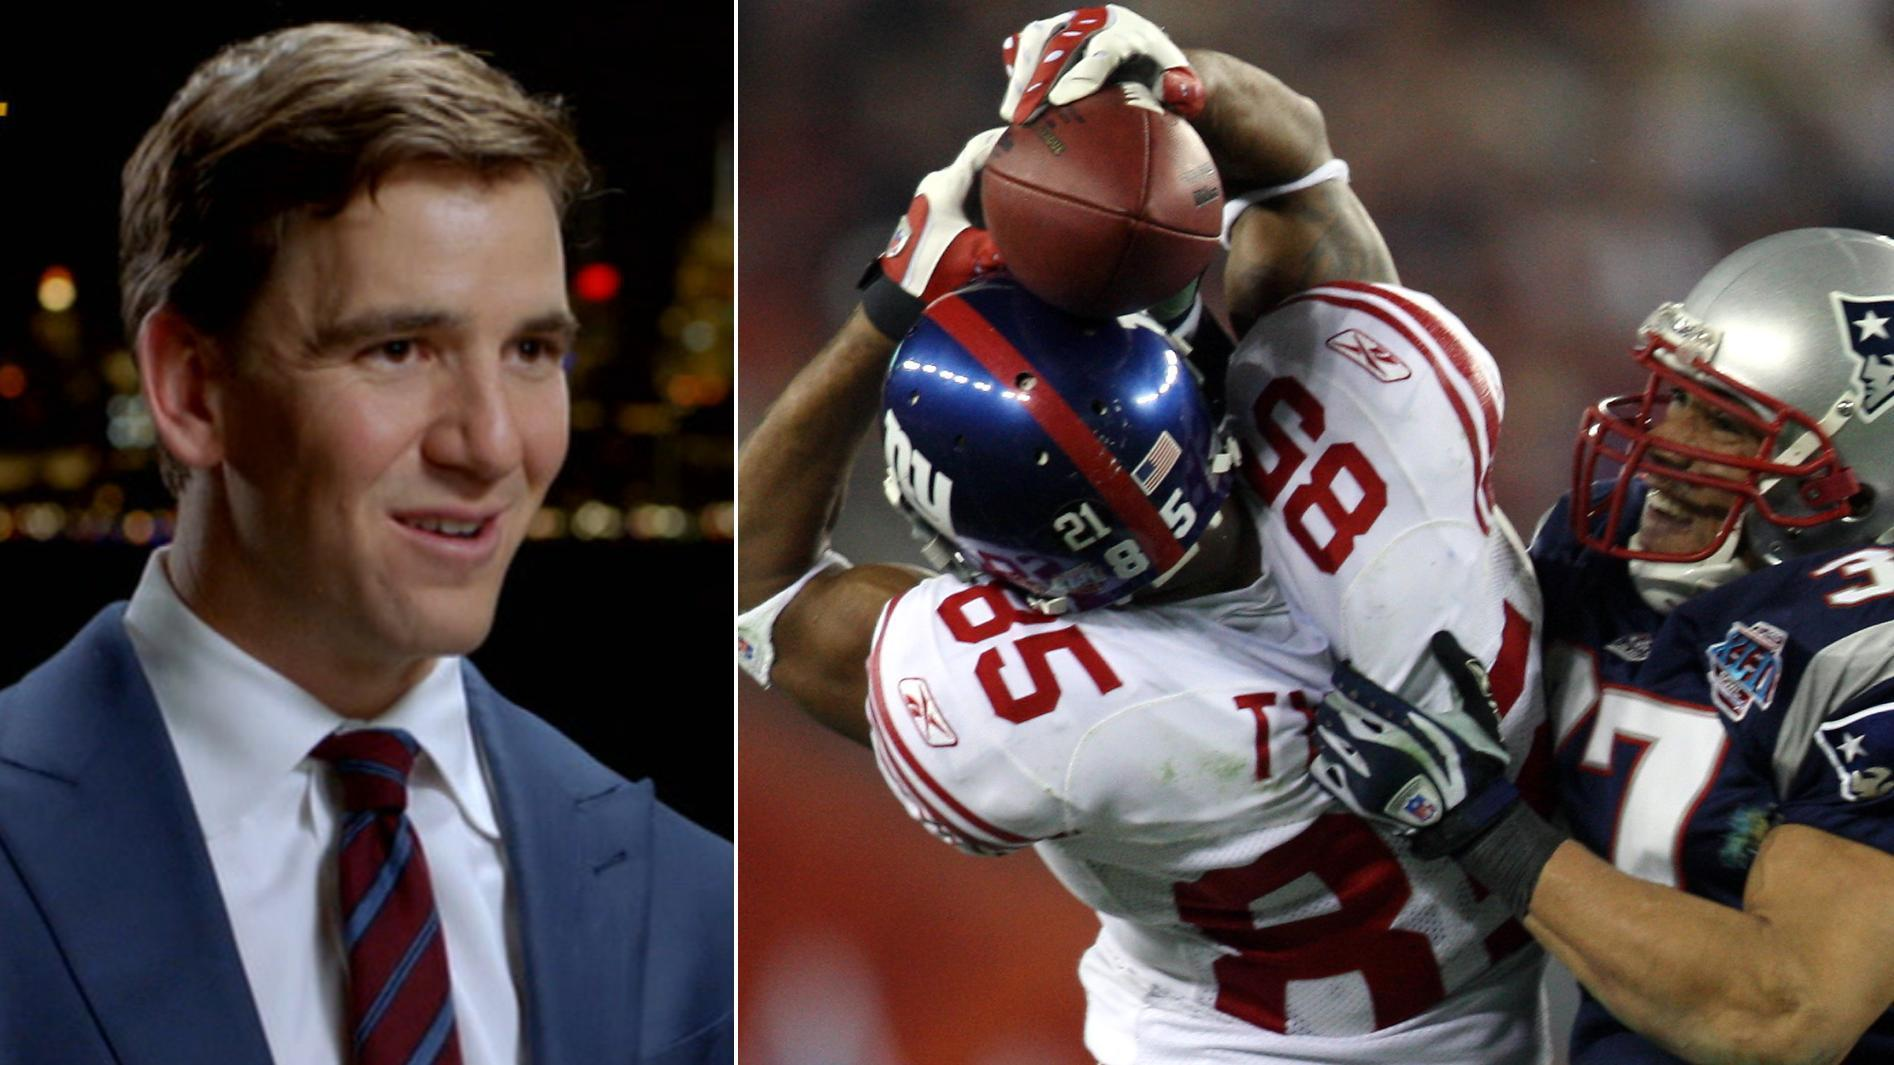 Eli, Peyton recap the greatest upset in Super Bowl history